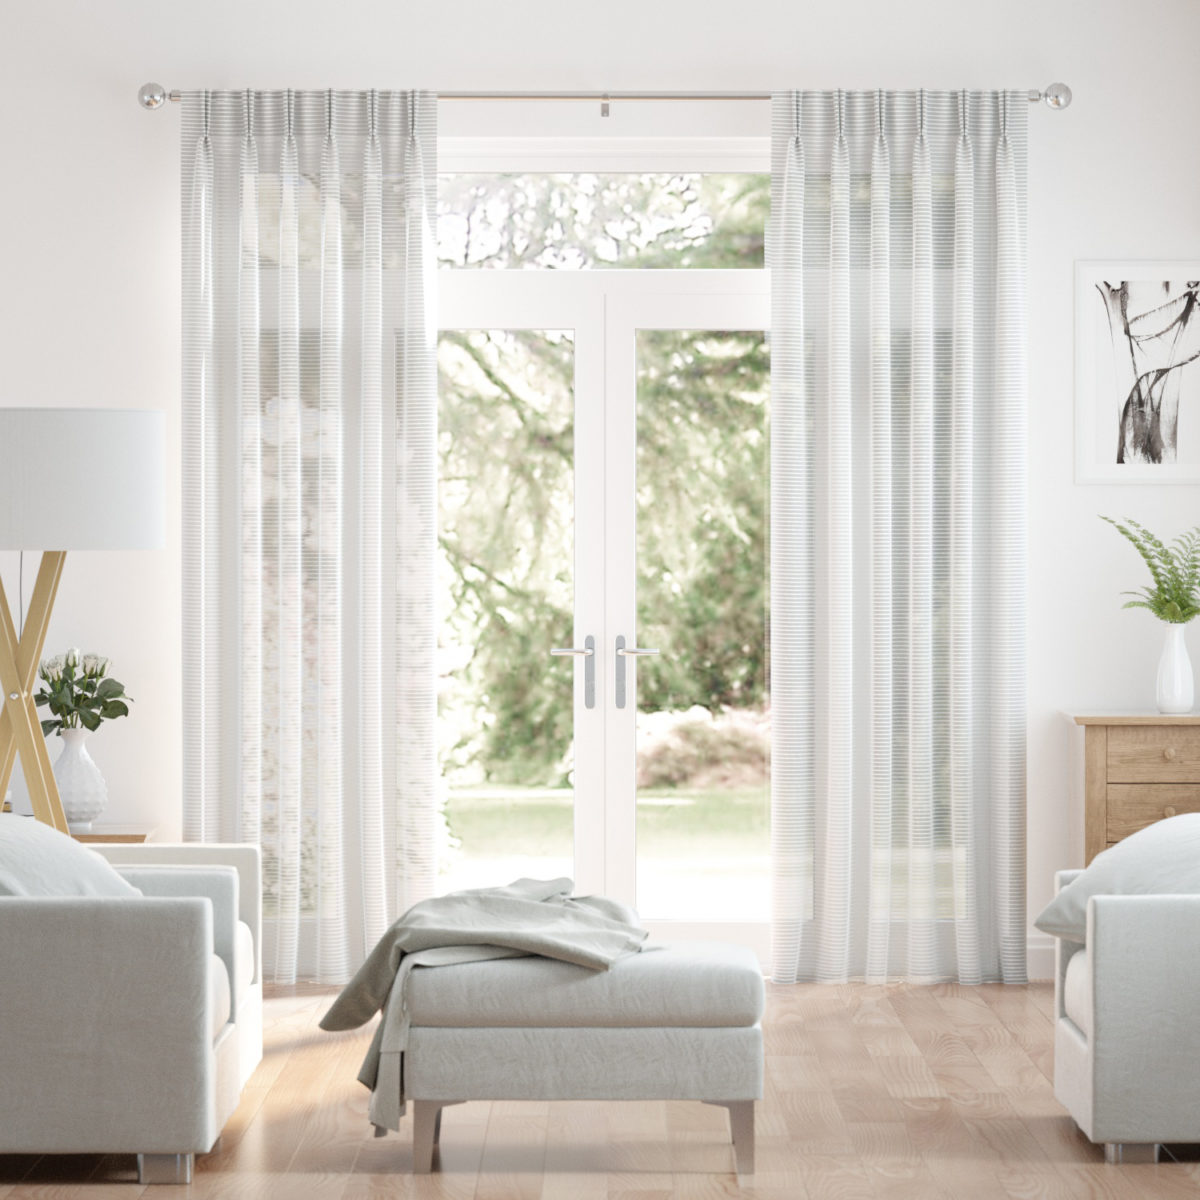 2cava-voile-oyster-sheer-curtains-1200x1200.jpg